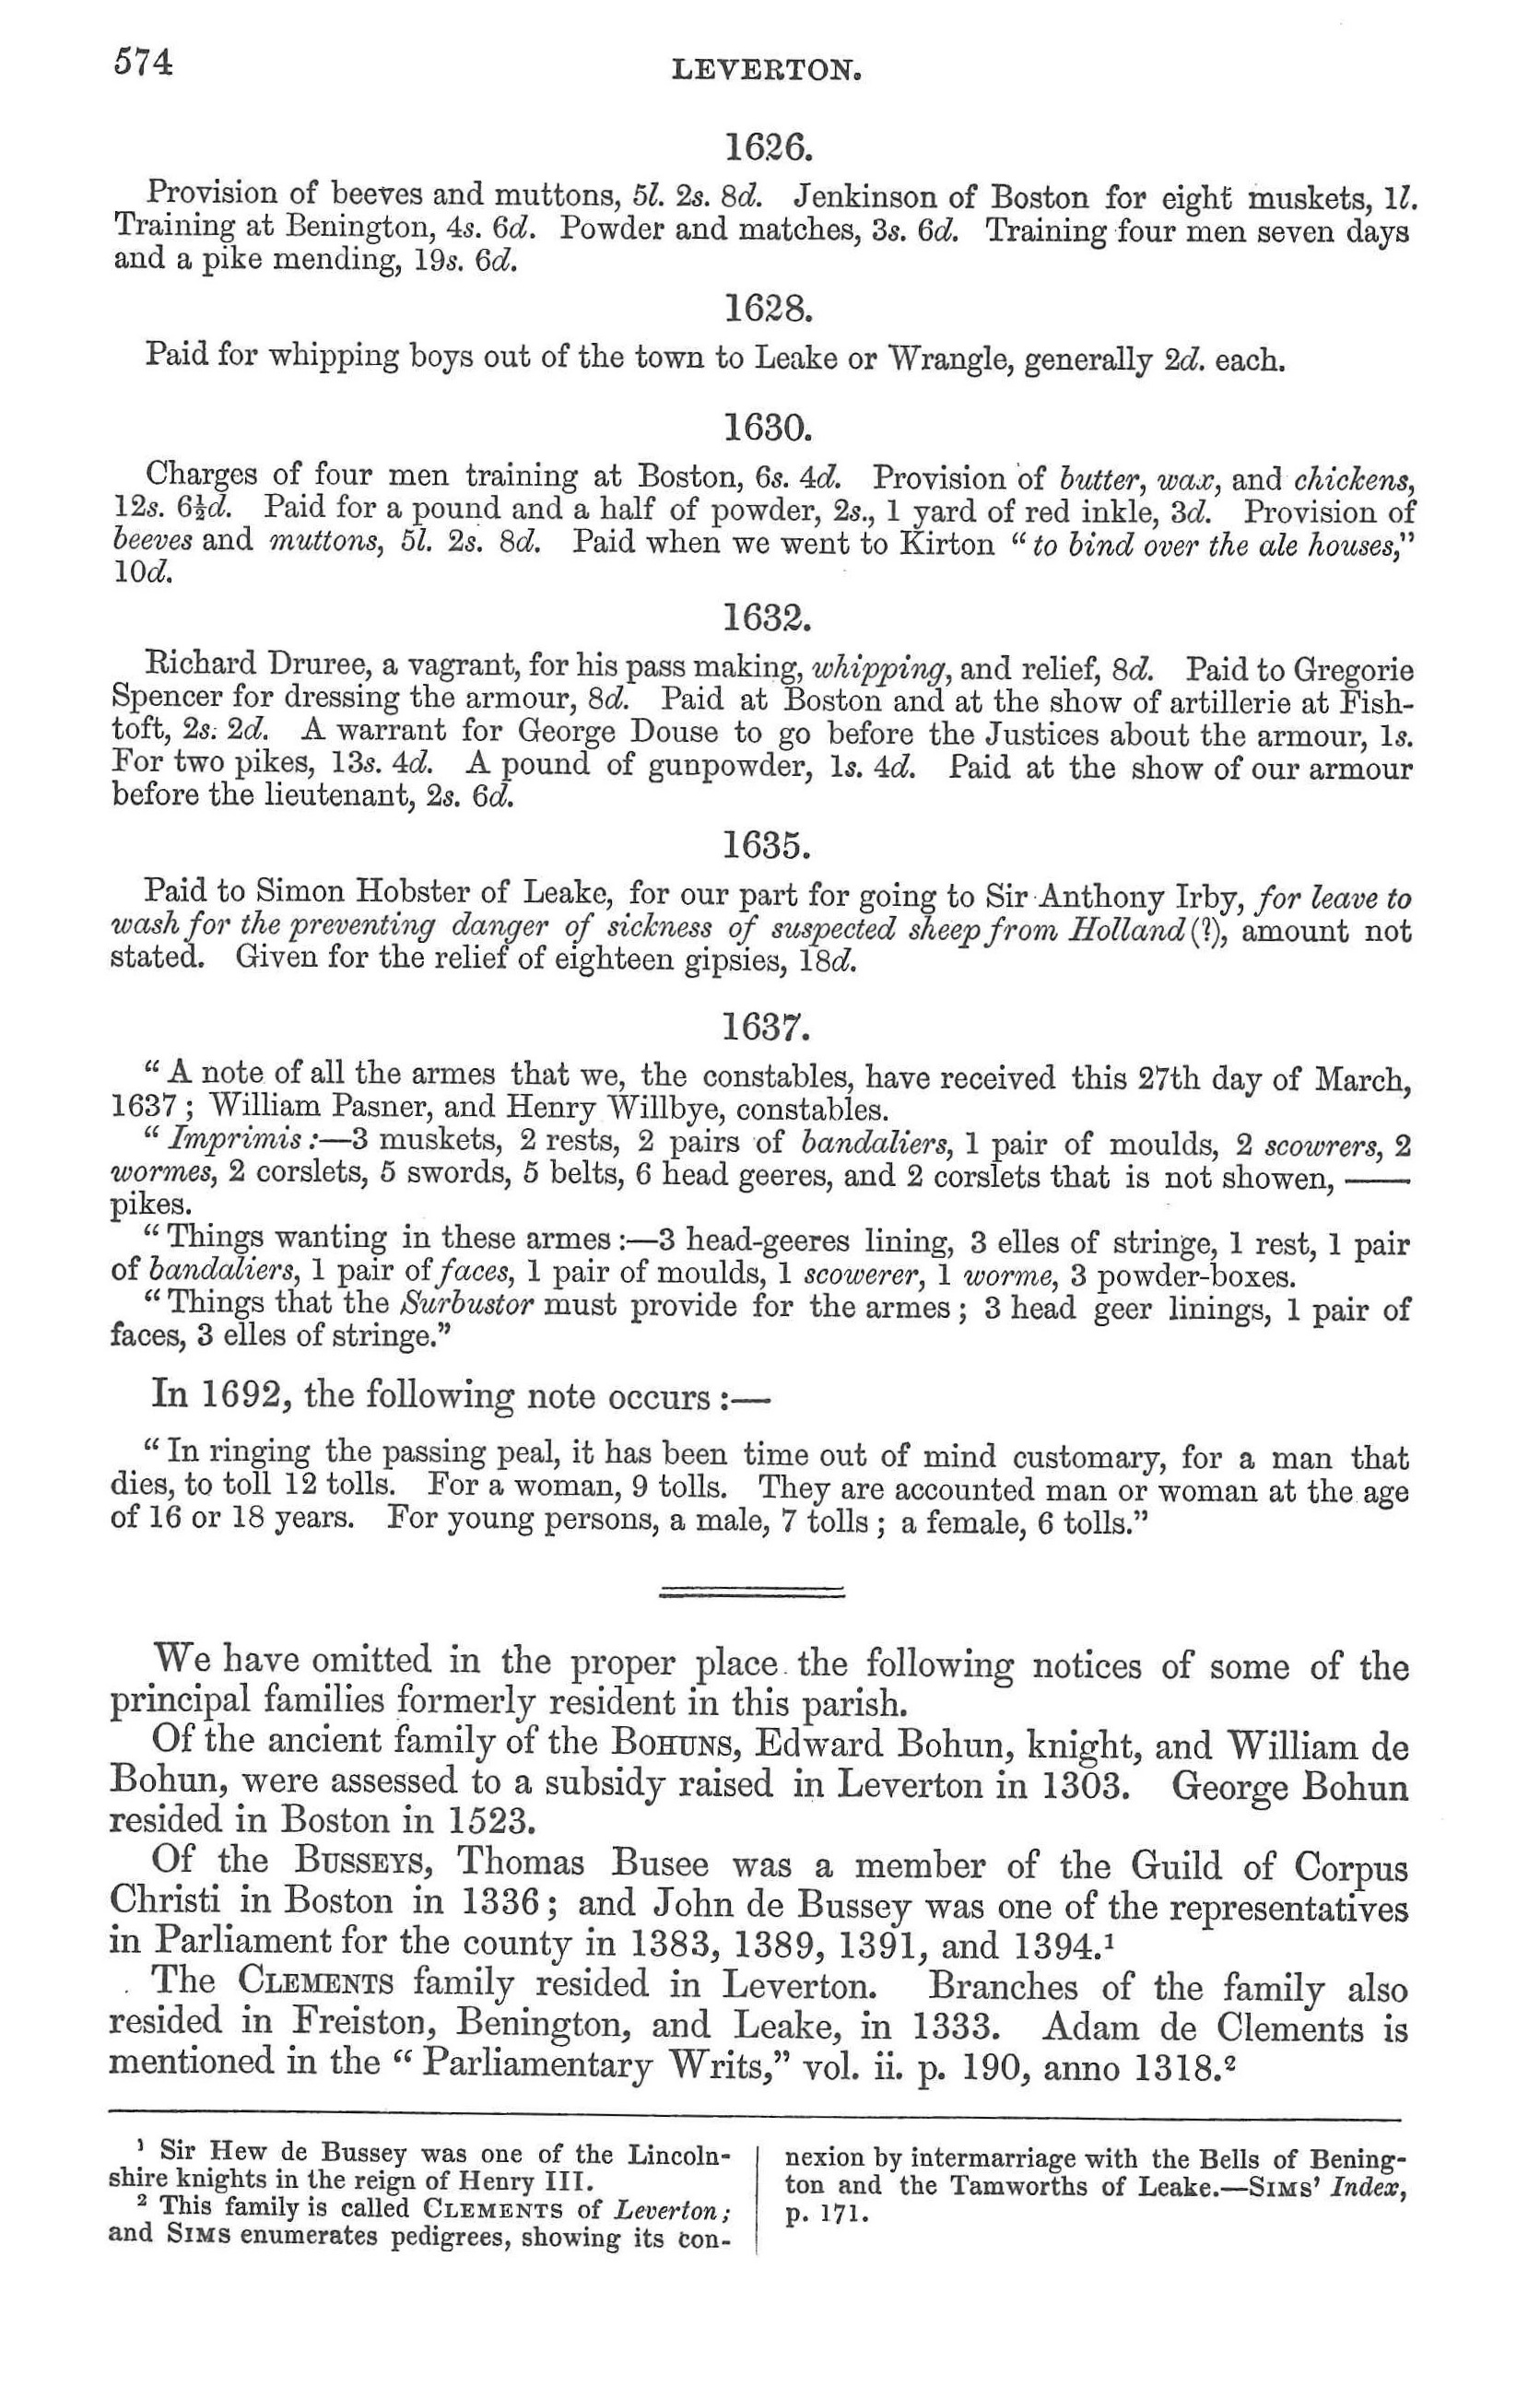 primary and secondary sources research paper A secondary source contrasts with a primary source an example of primary source material is the purpose, methods, results, conclusions sections of a research paper (in imrad style) most undergraduate research projects rely on secondary source material, with perhaps snippets of primary.